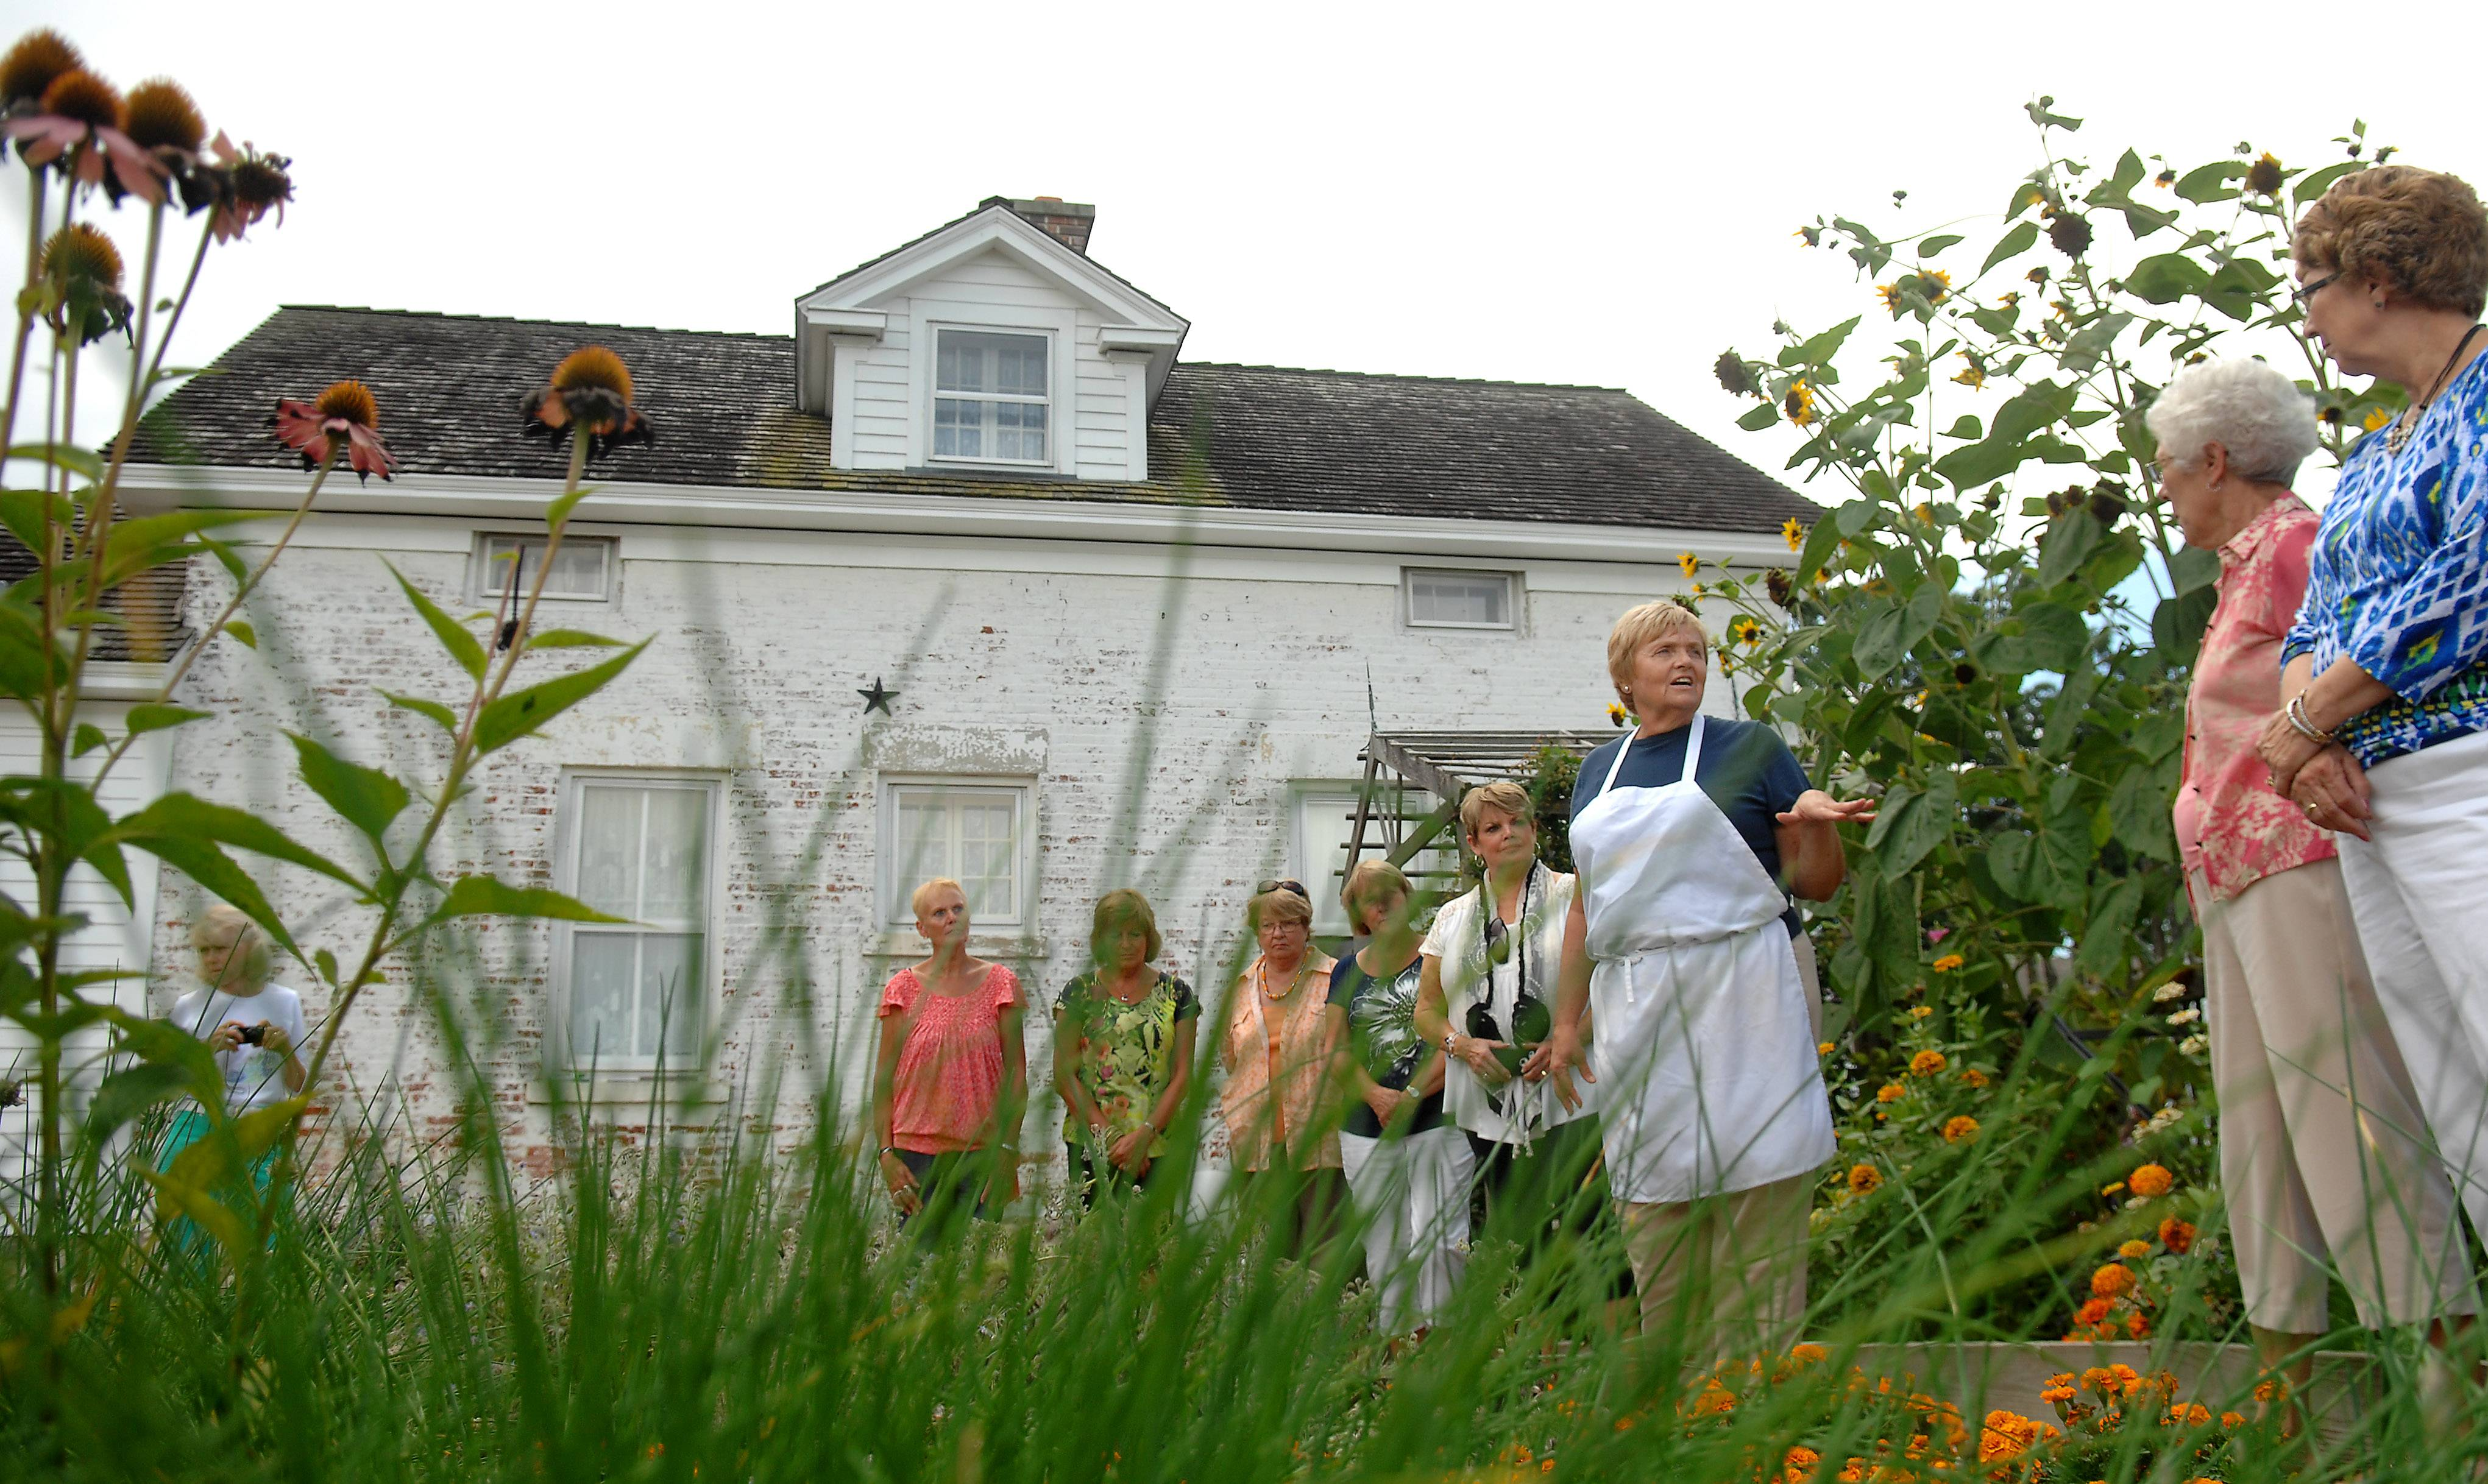 Penny Newkirk takes her students on a tour of her herb garden, which is just outside the 1800s-era building where she runs Country Garden Cuisine in Campton Hills. She teaches how food starts in her garden ends up on a plate using techniques that can easily be done at home.